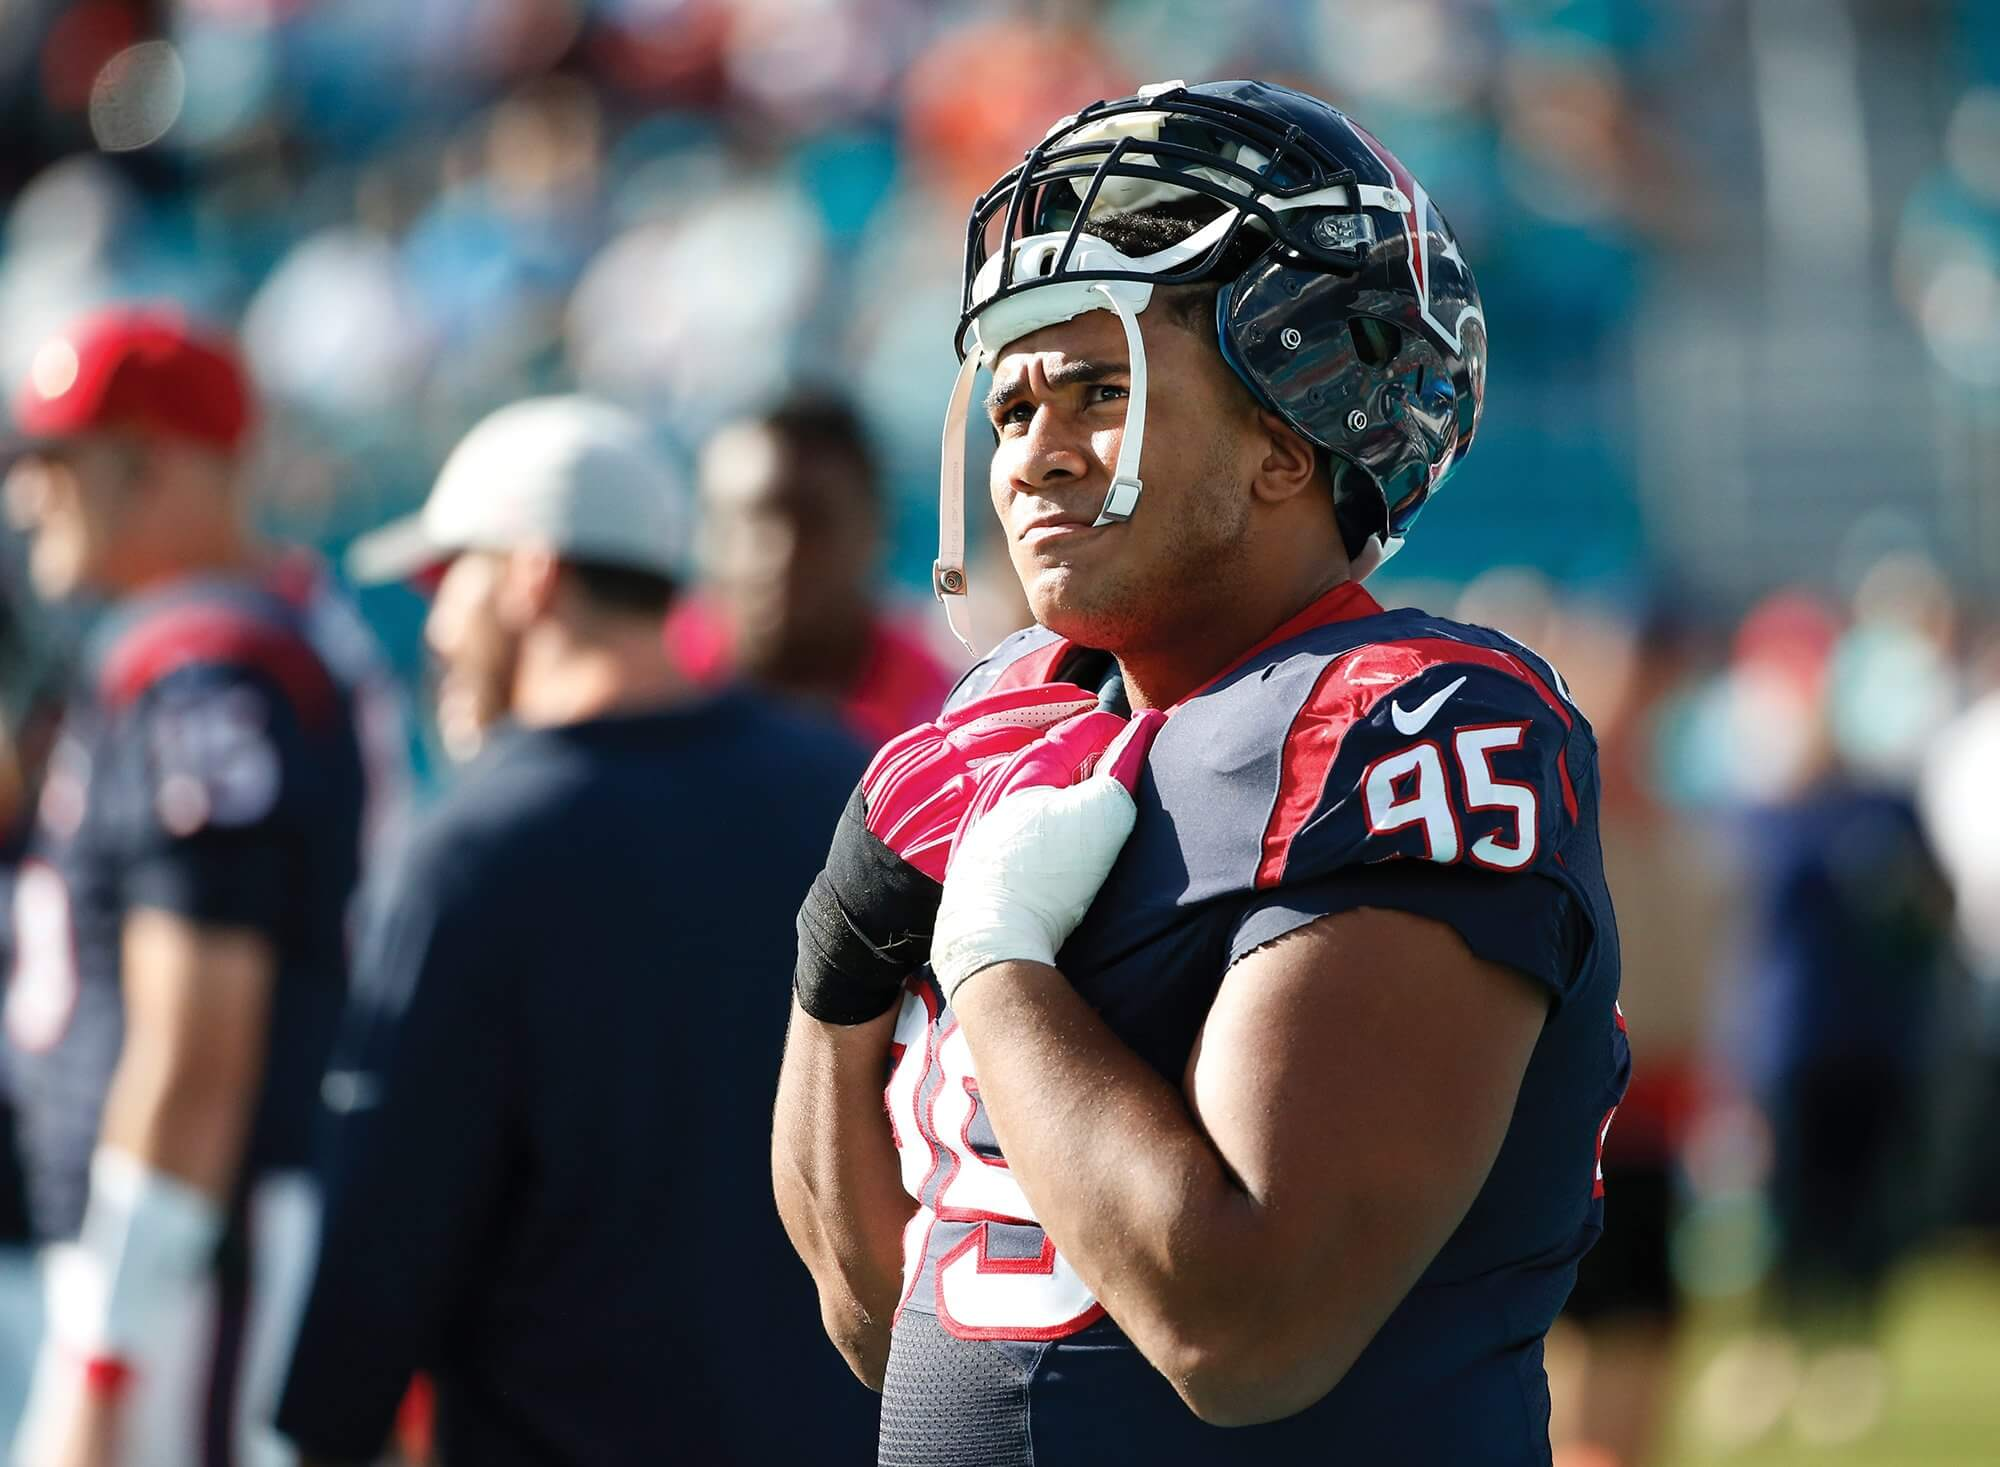 Christian Covington, a defensive end for the Houston Texans, got to know Paige Lejeune and her family. Credit: AP / Wilfredo Lee